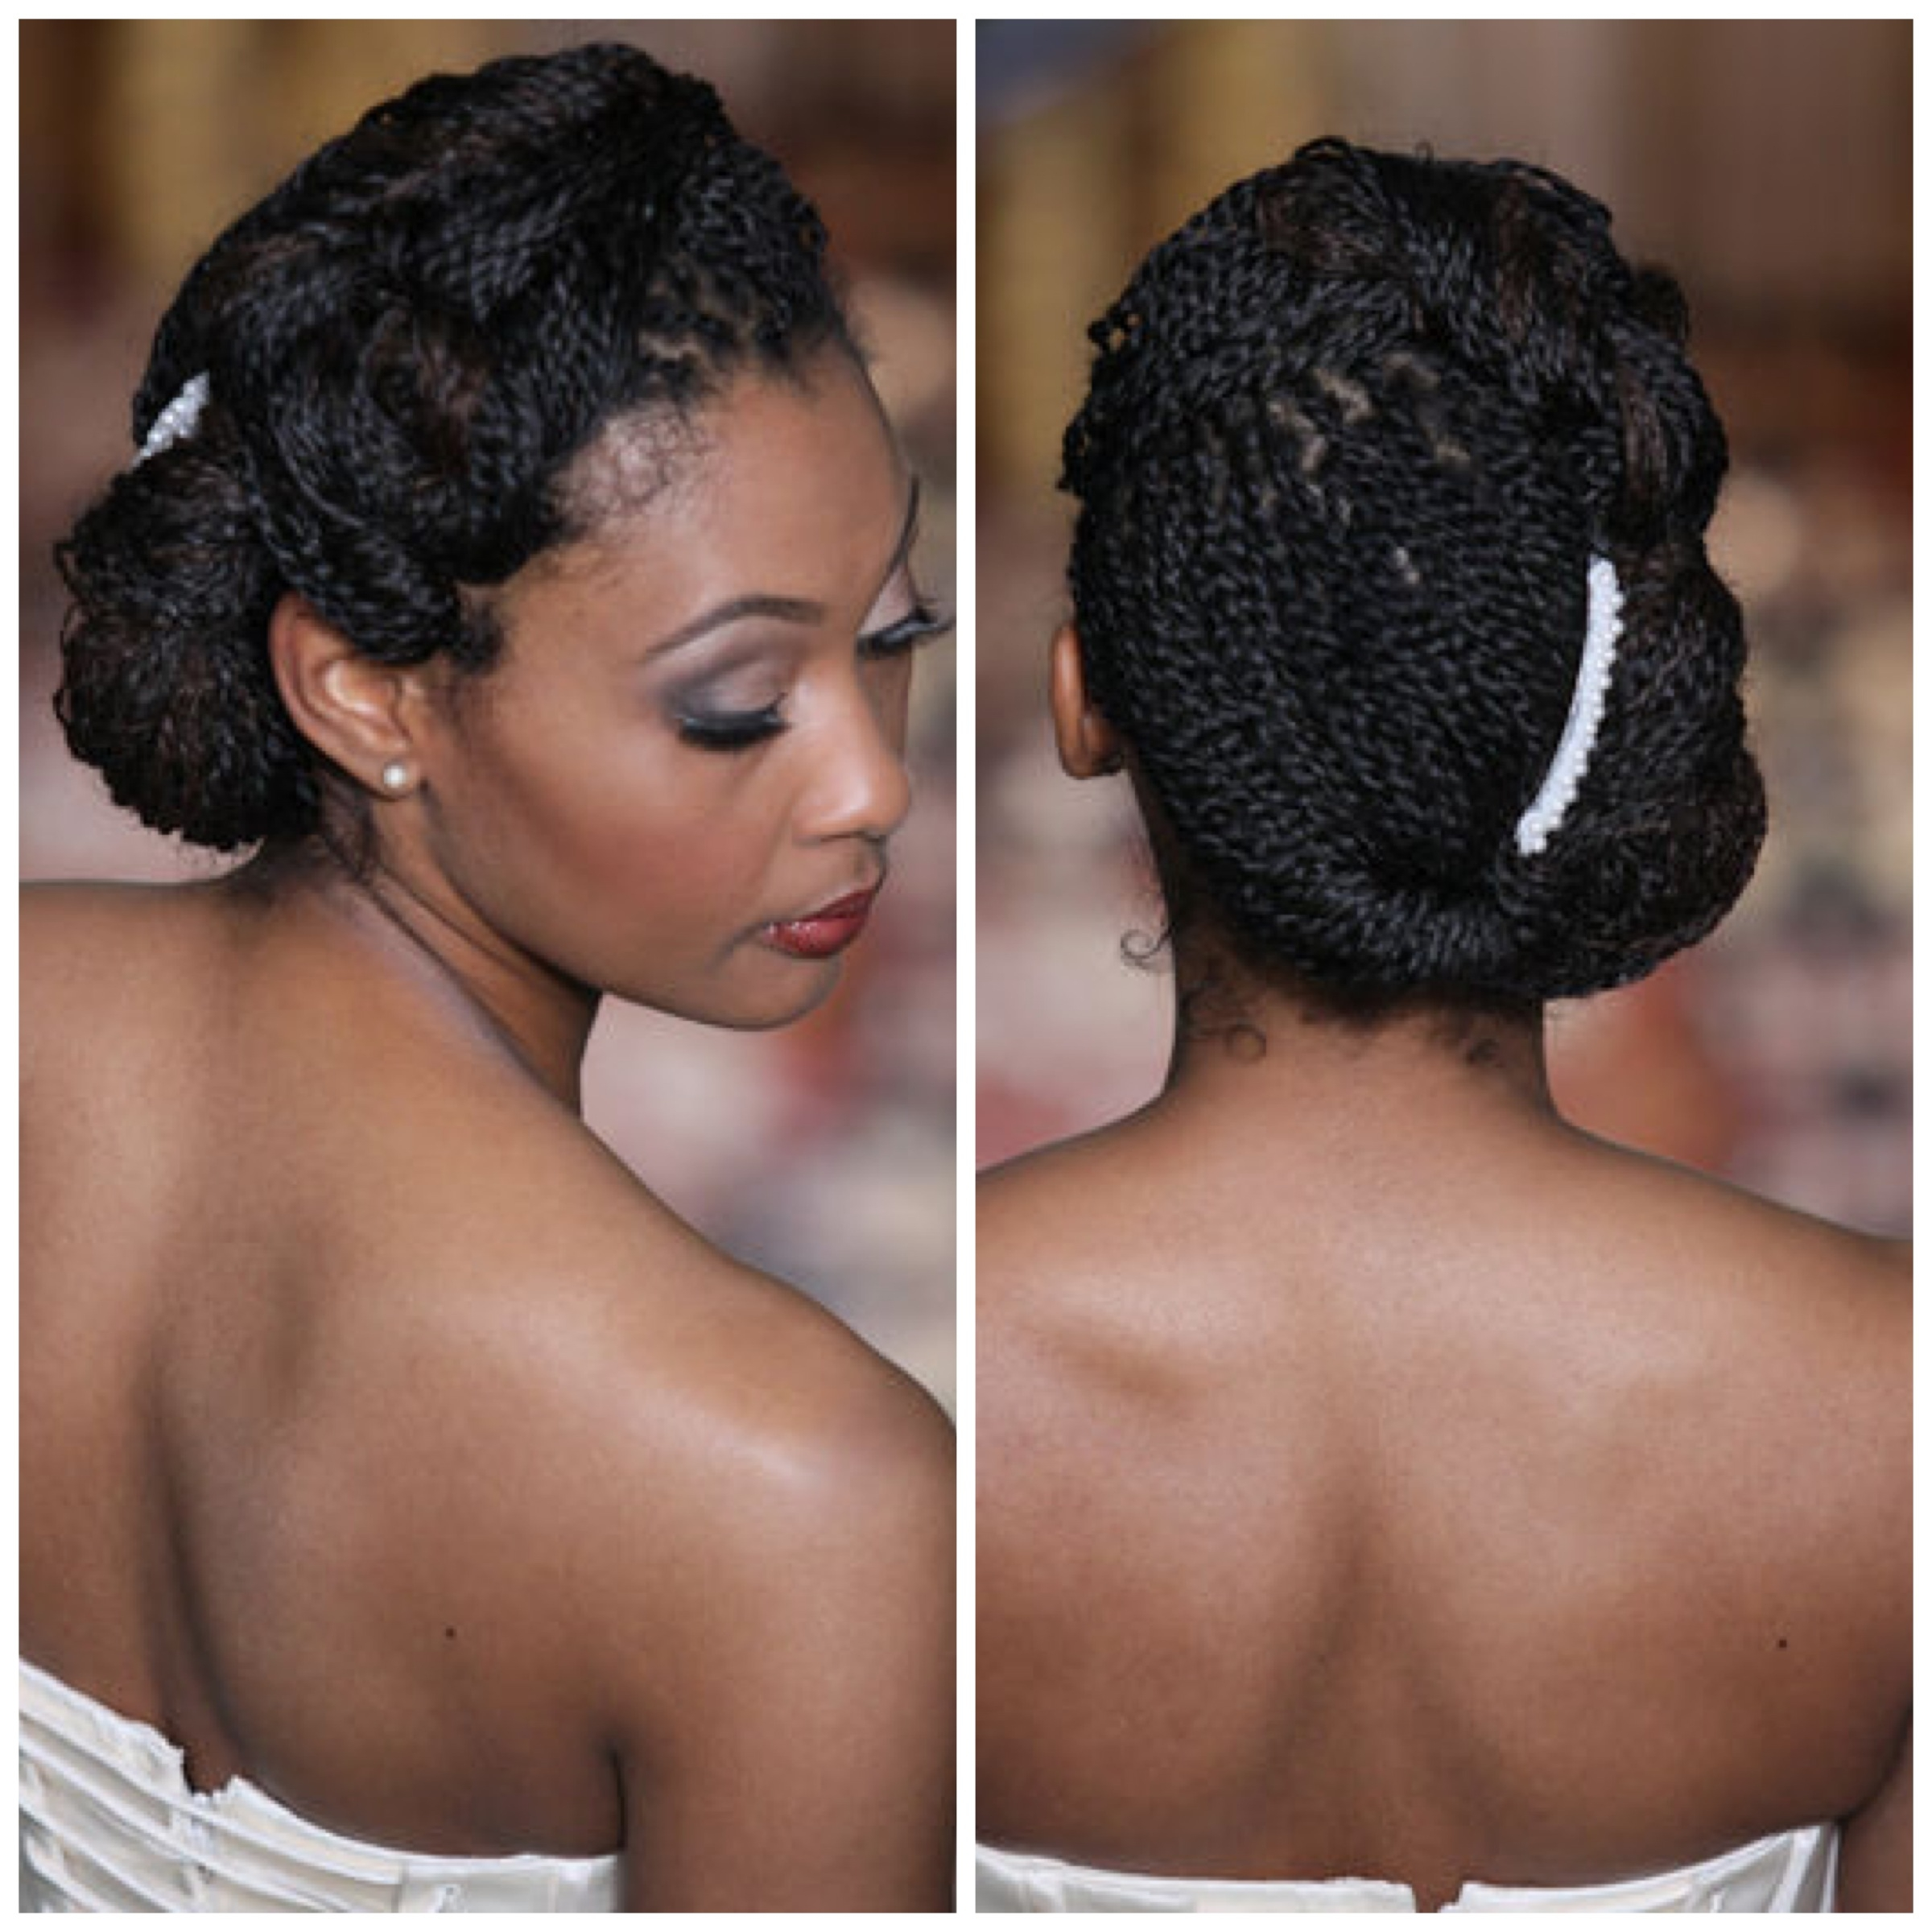 25 Updo Hairstyles for Black Women